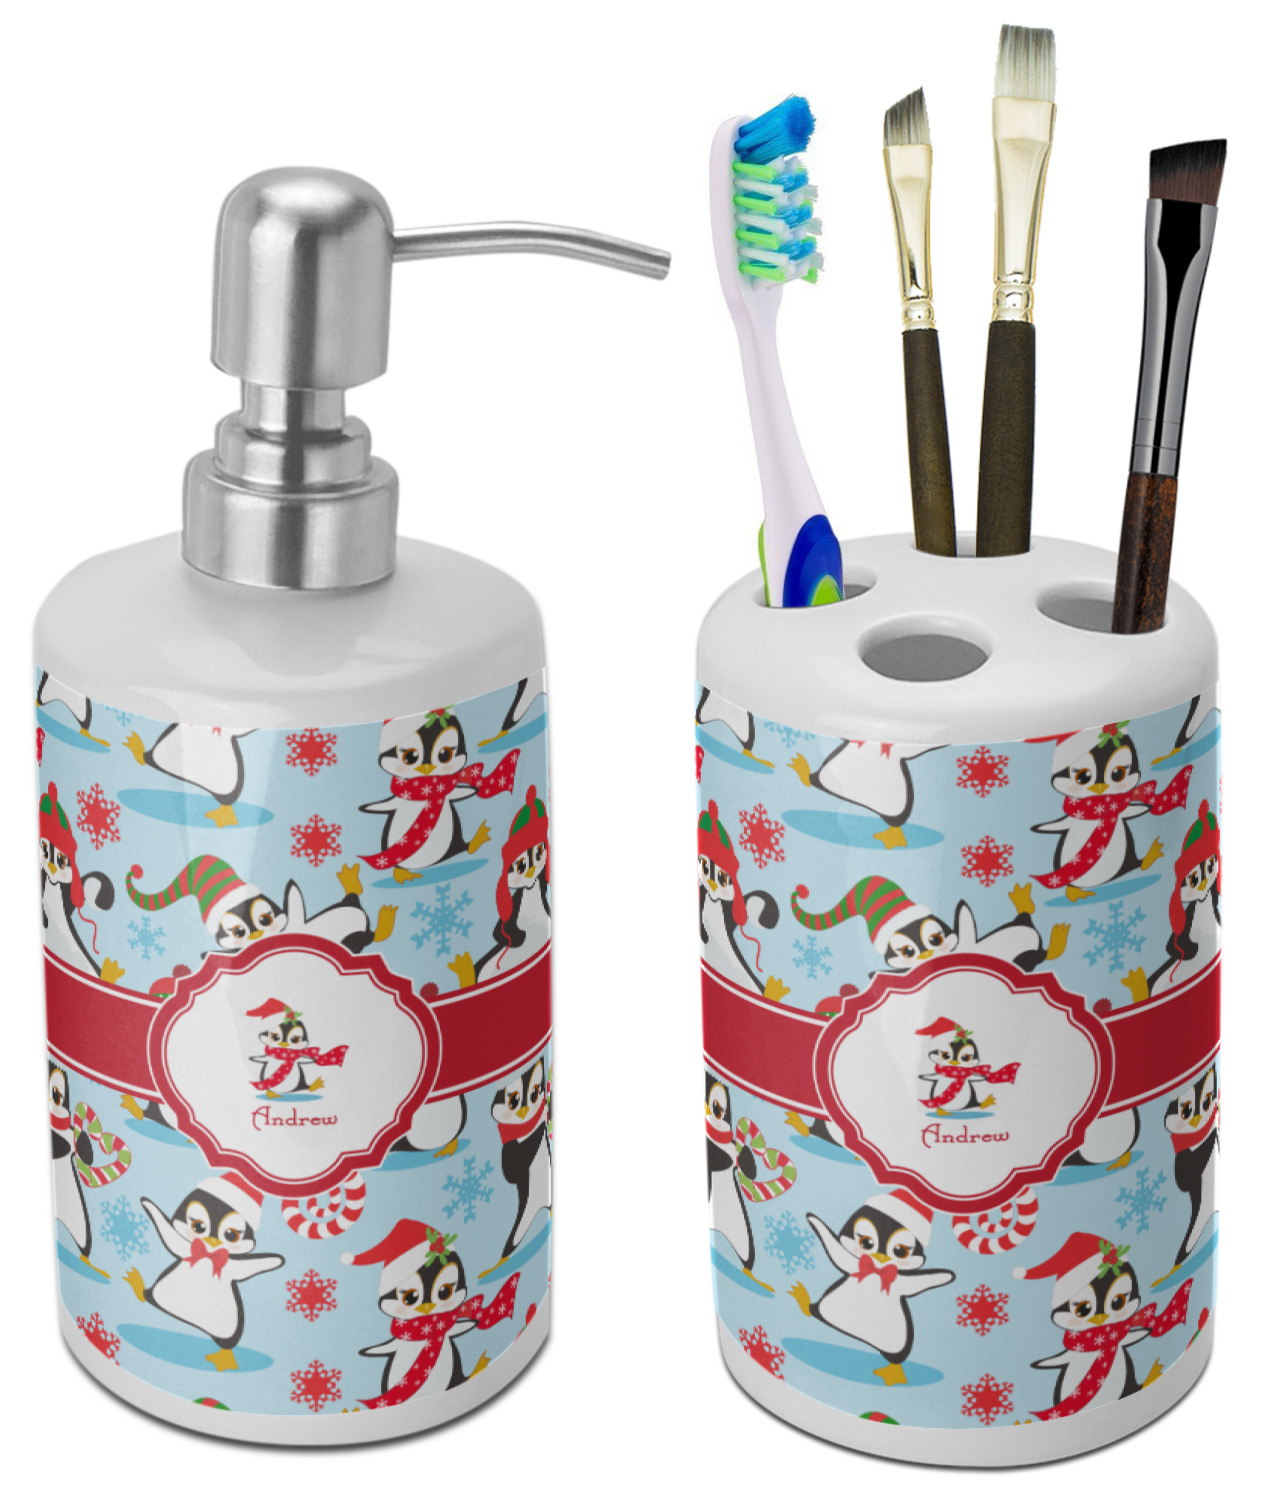 Christmas Penguins Bathroom Accessories Set Ceramic Personalized